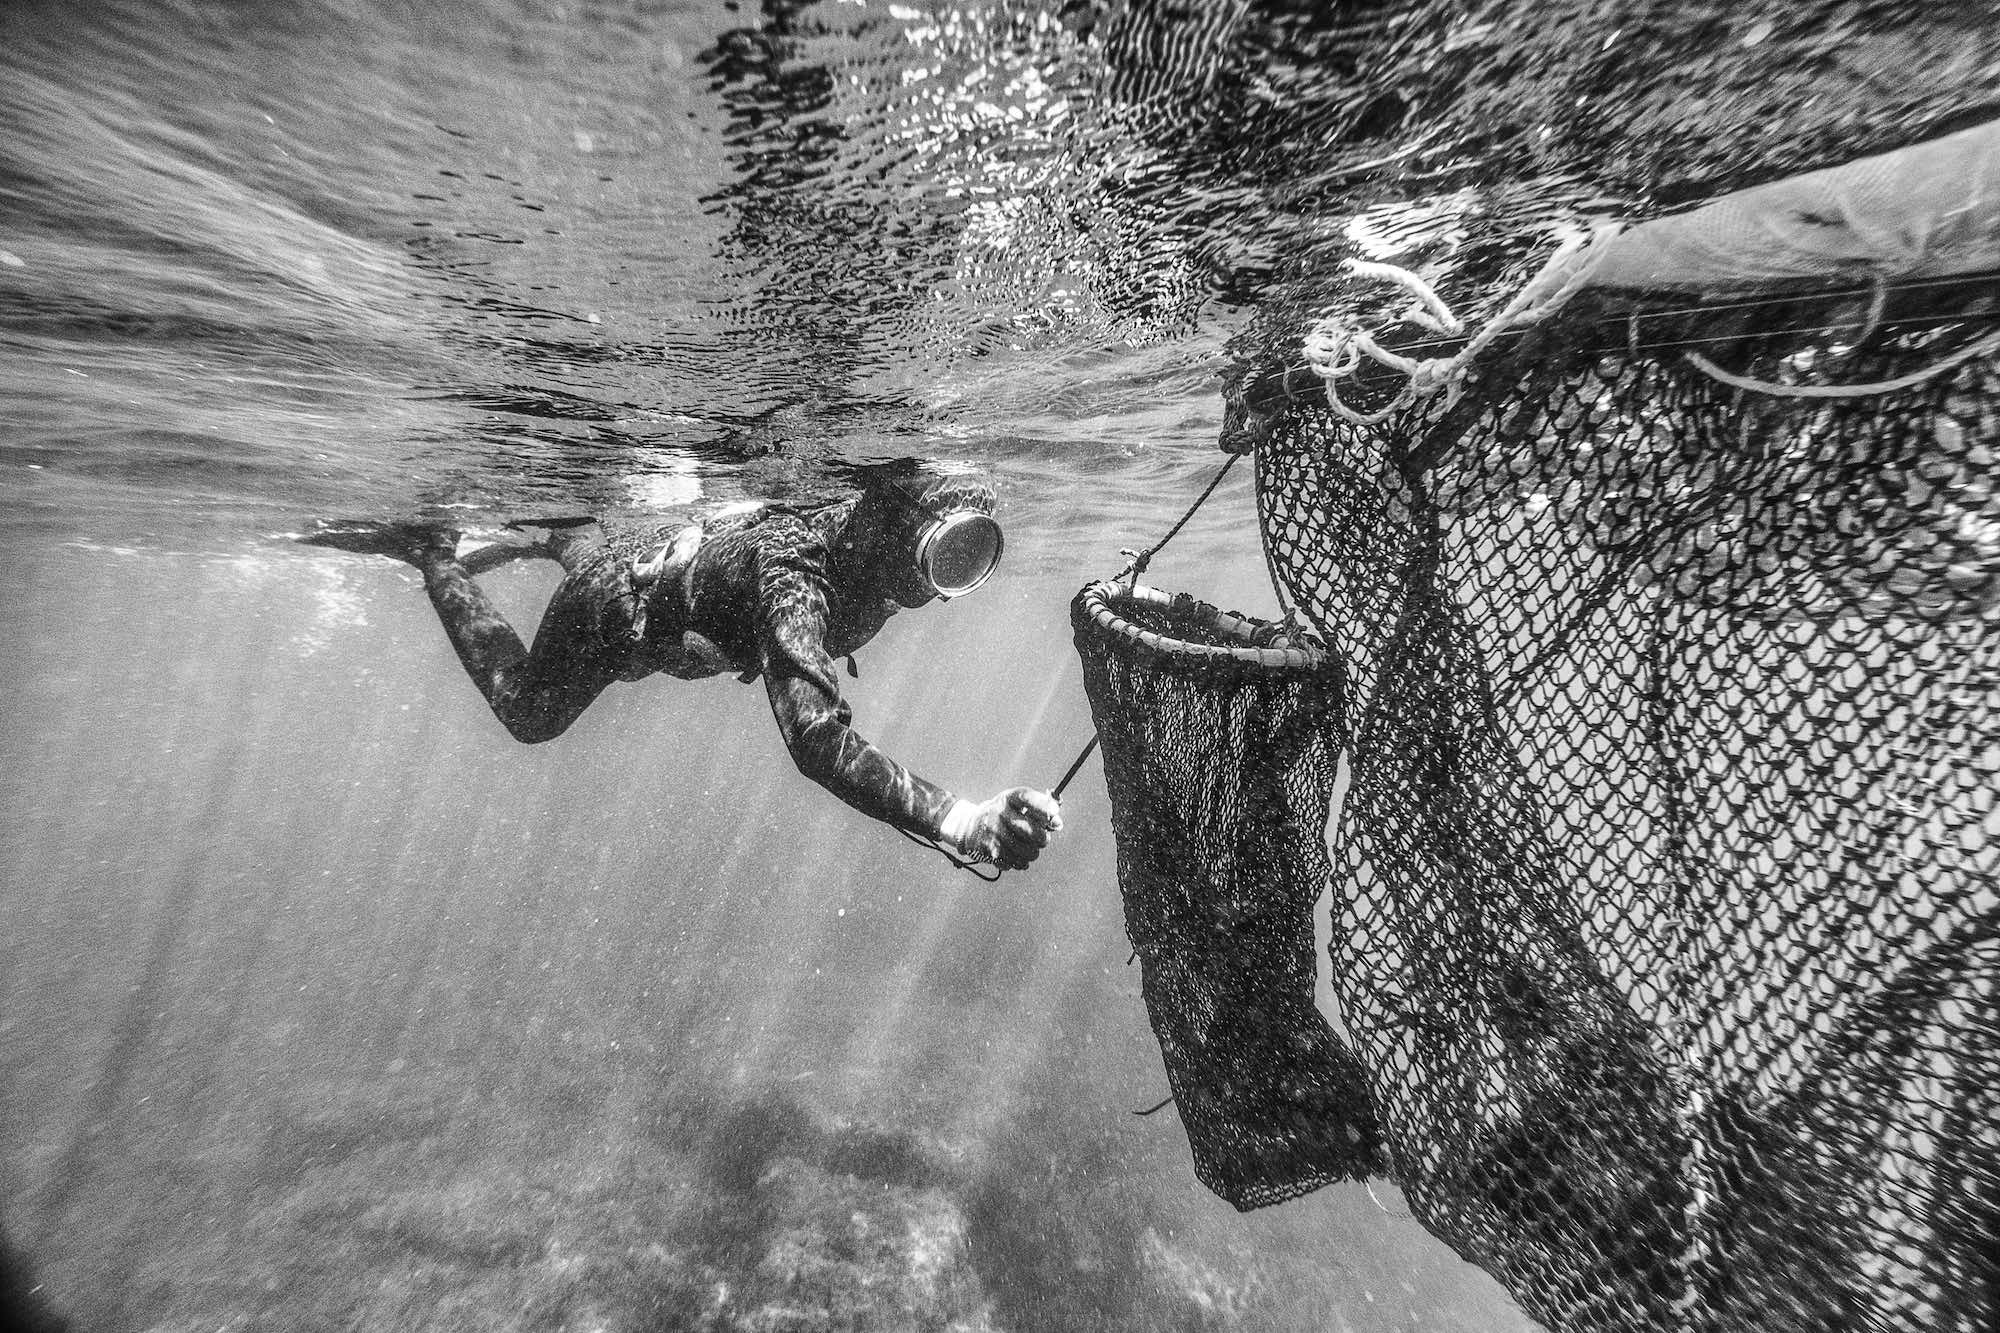 Haenyeo Women Divers Jeju Island Underwater Documentary Photography 3